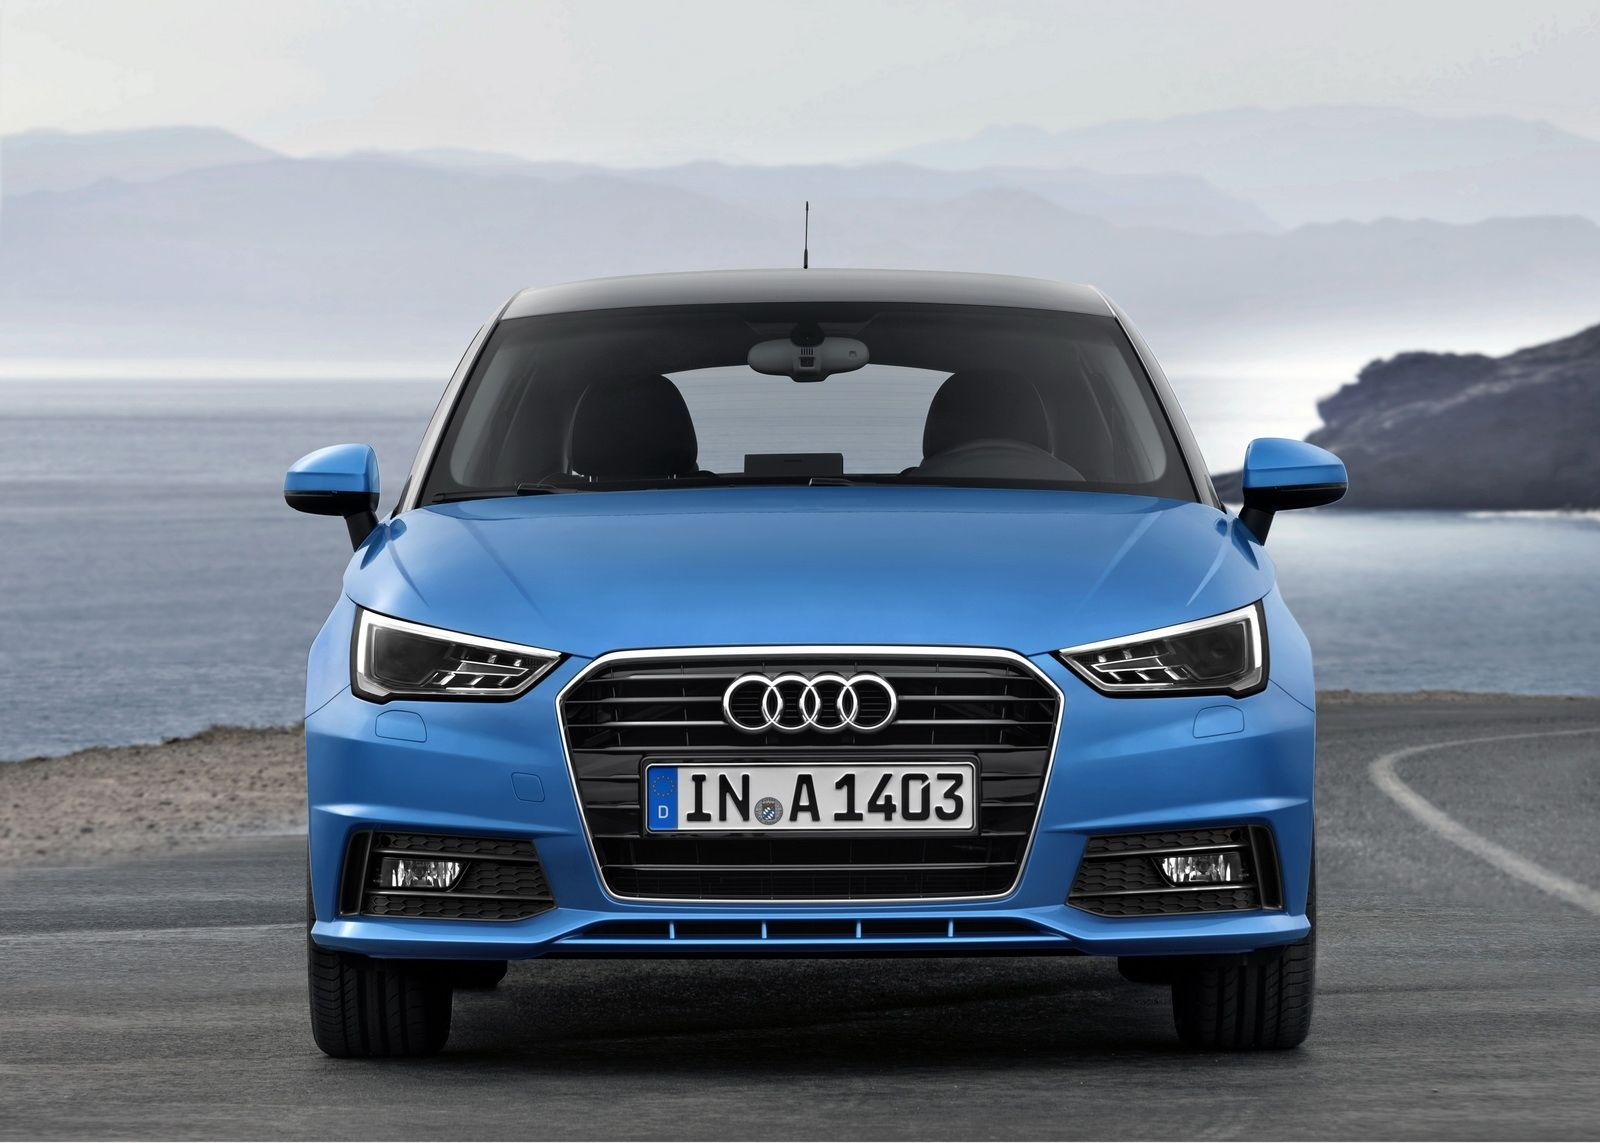 New 2020 Audi A1 Facelift Release Date Price And Release Date